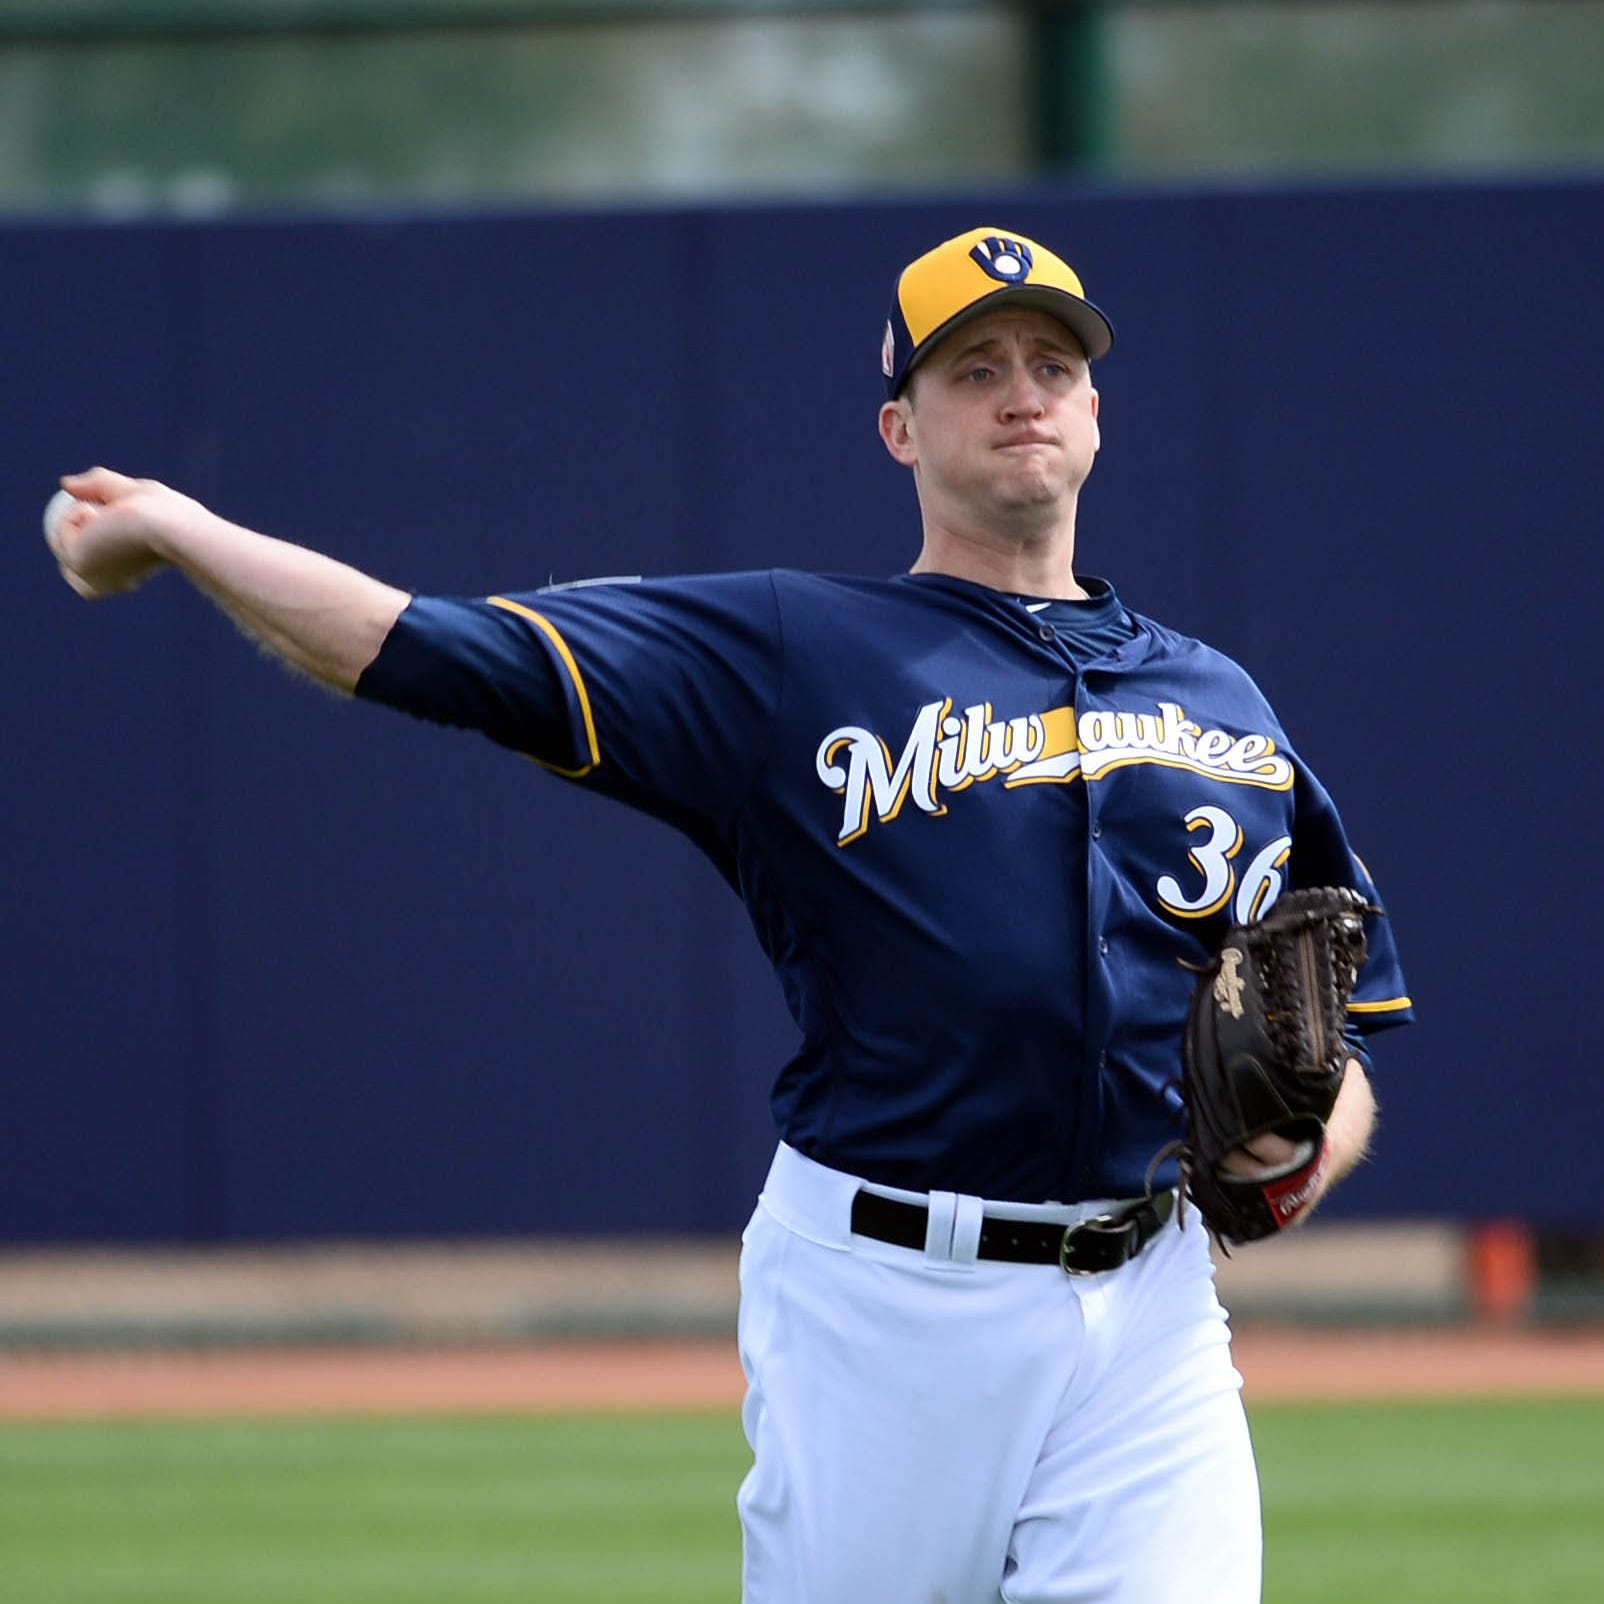 Brewers summon Jake Petricka from Class AAA, send Taylor Williams down to re-capture fastball command